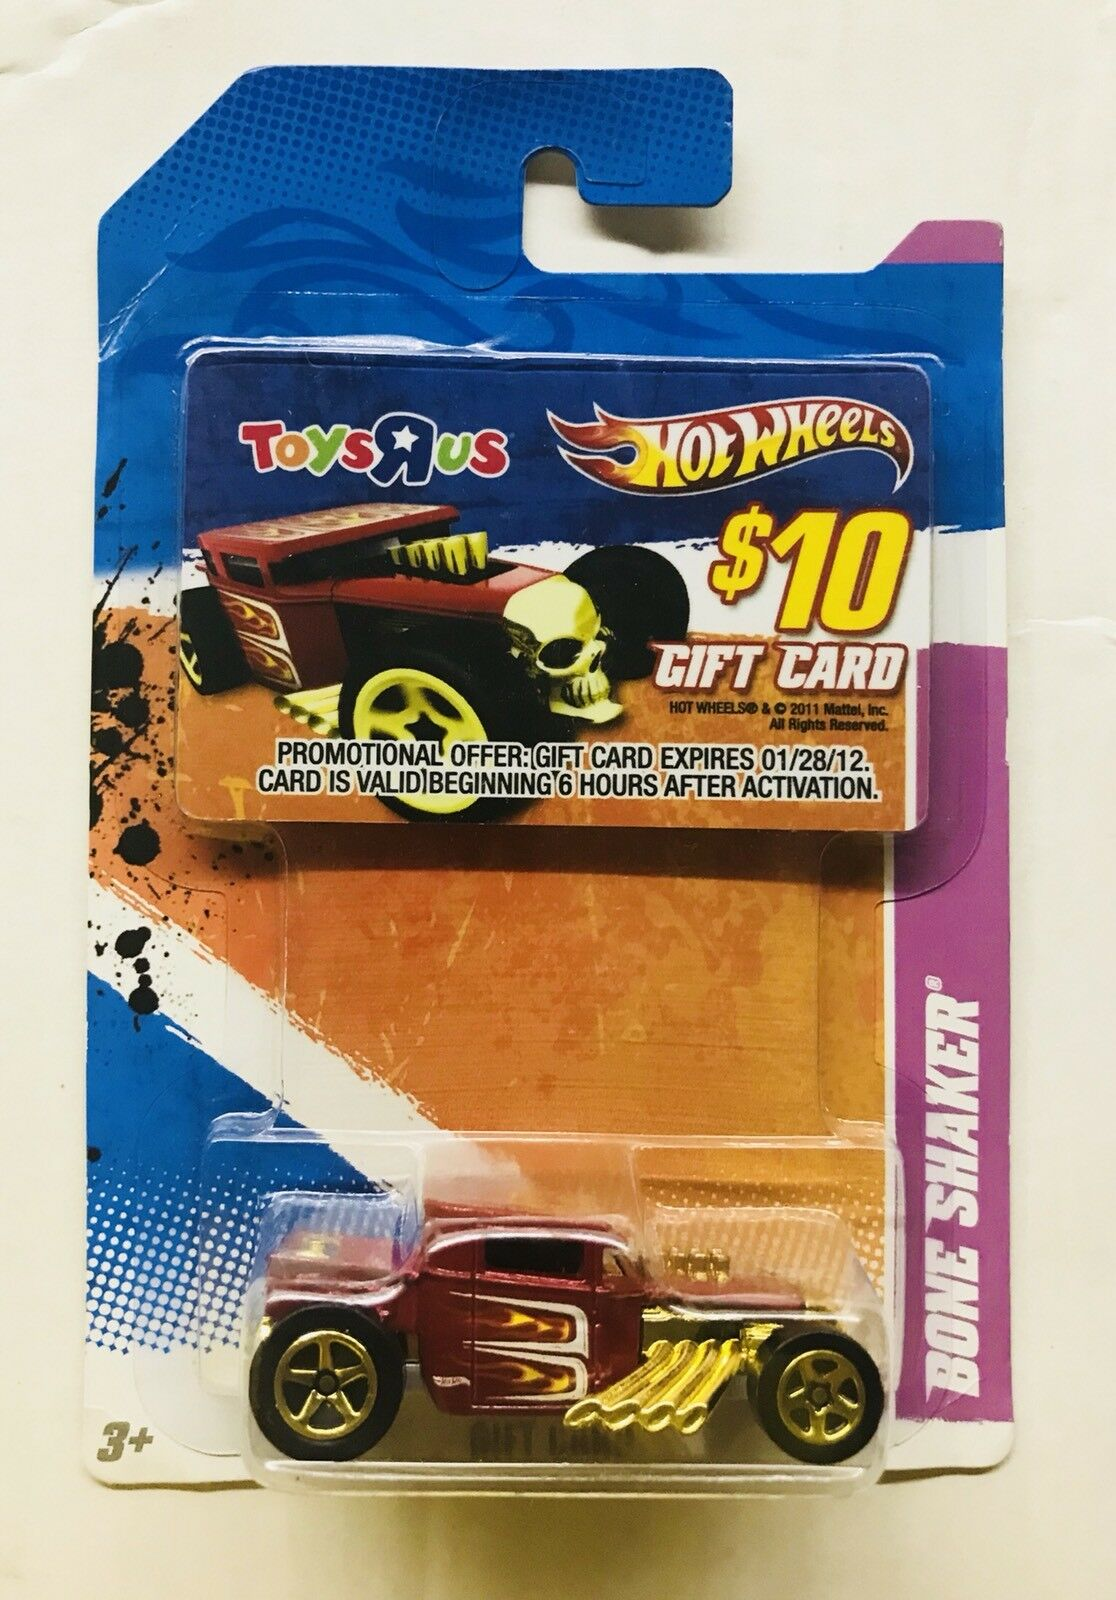 Hot Wheels Bone Shaker Boneshaker Toys R Us Tru Exclusivo Tarjeta De Regalo Promo T Hunt